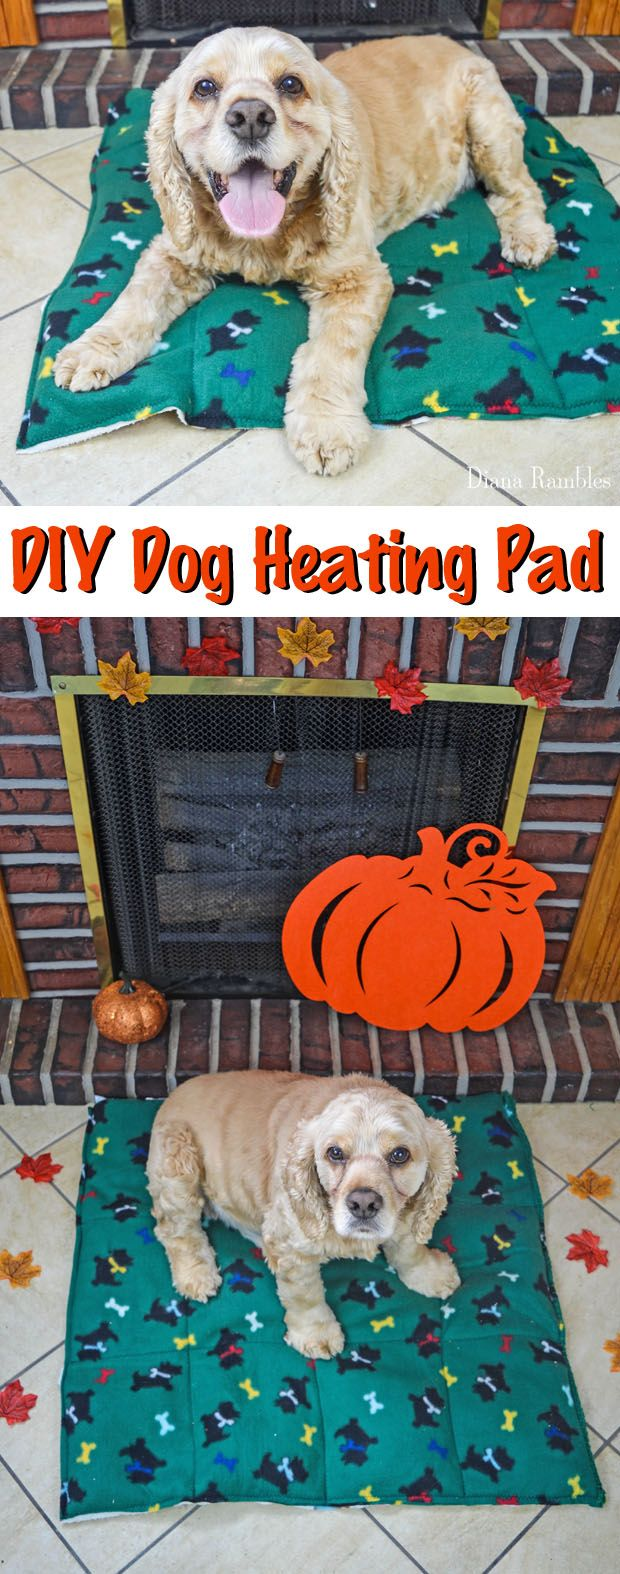 DIY Dog Heating Pad Tutorial - Make this Dog Heating Pad to keep your pooch warm during the cold of the winter. Your pet will love this heating bed. AD @walm #PAWsomeGifts #ClausAndPaws